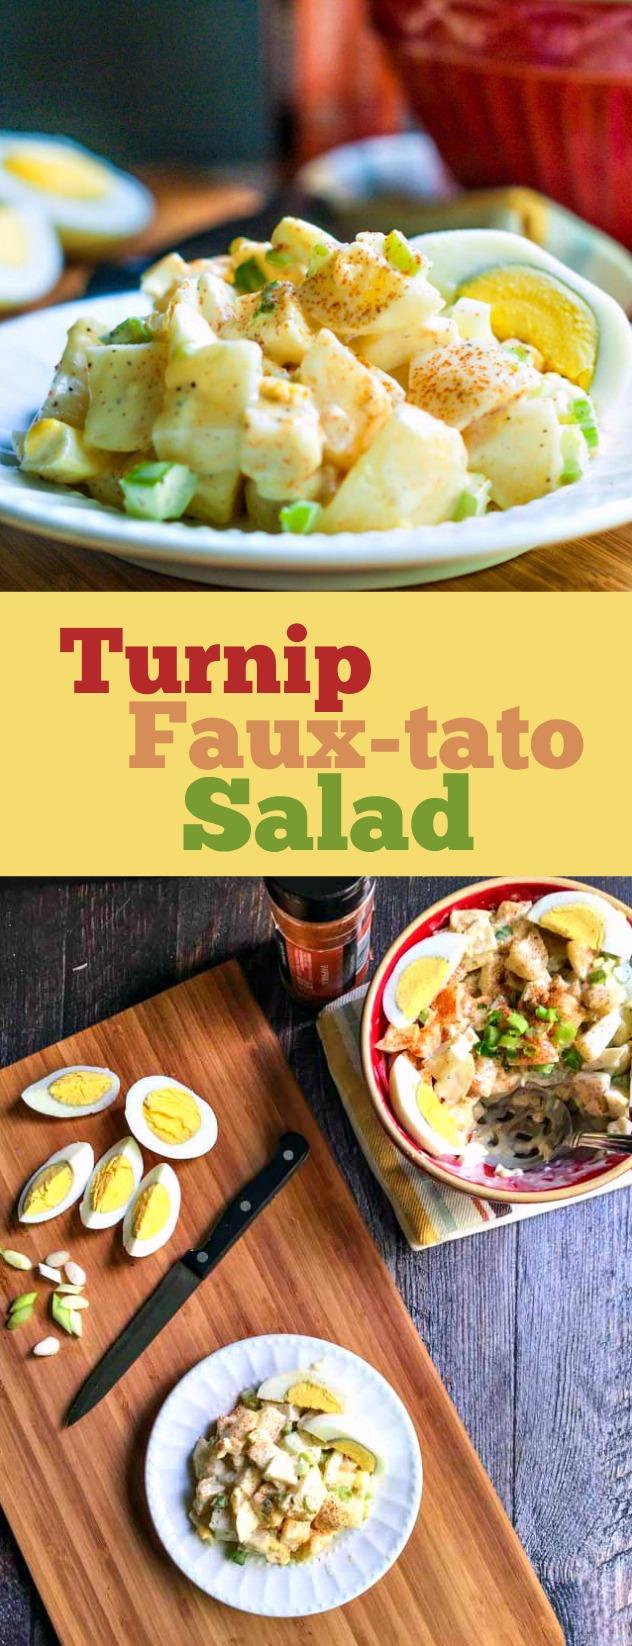 Turnip-fauxtato-salad-pinterest